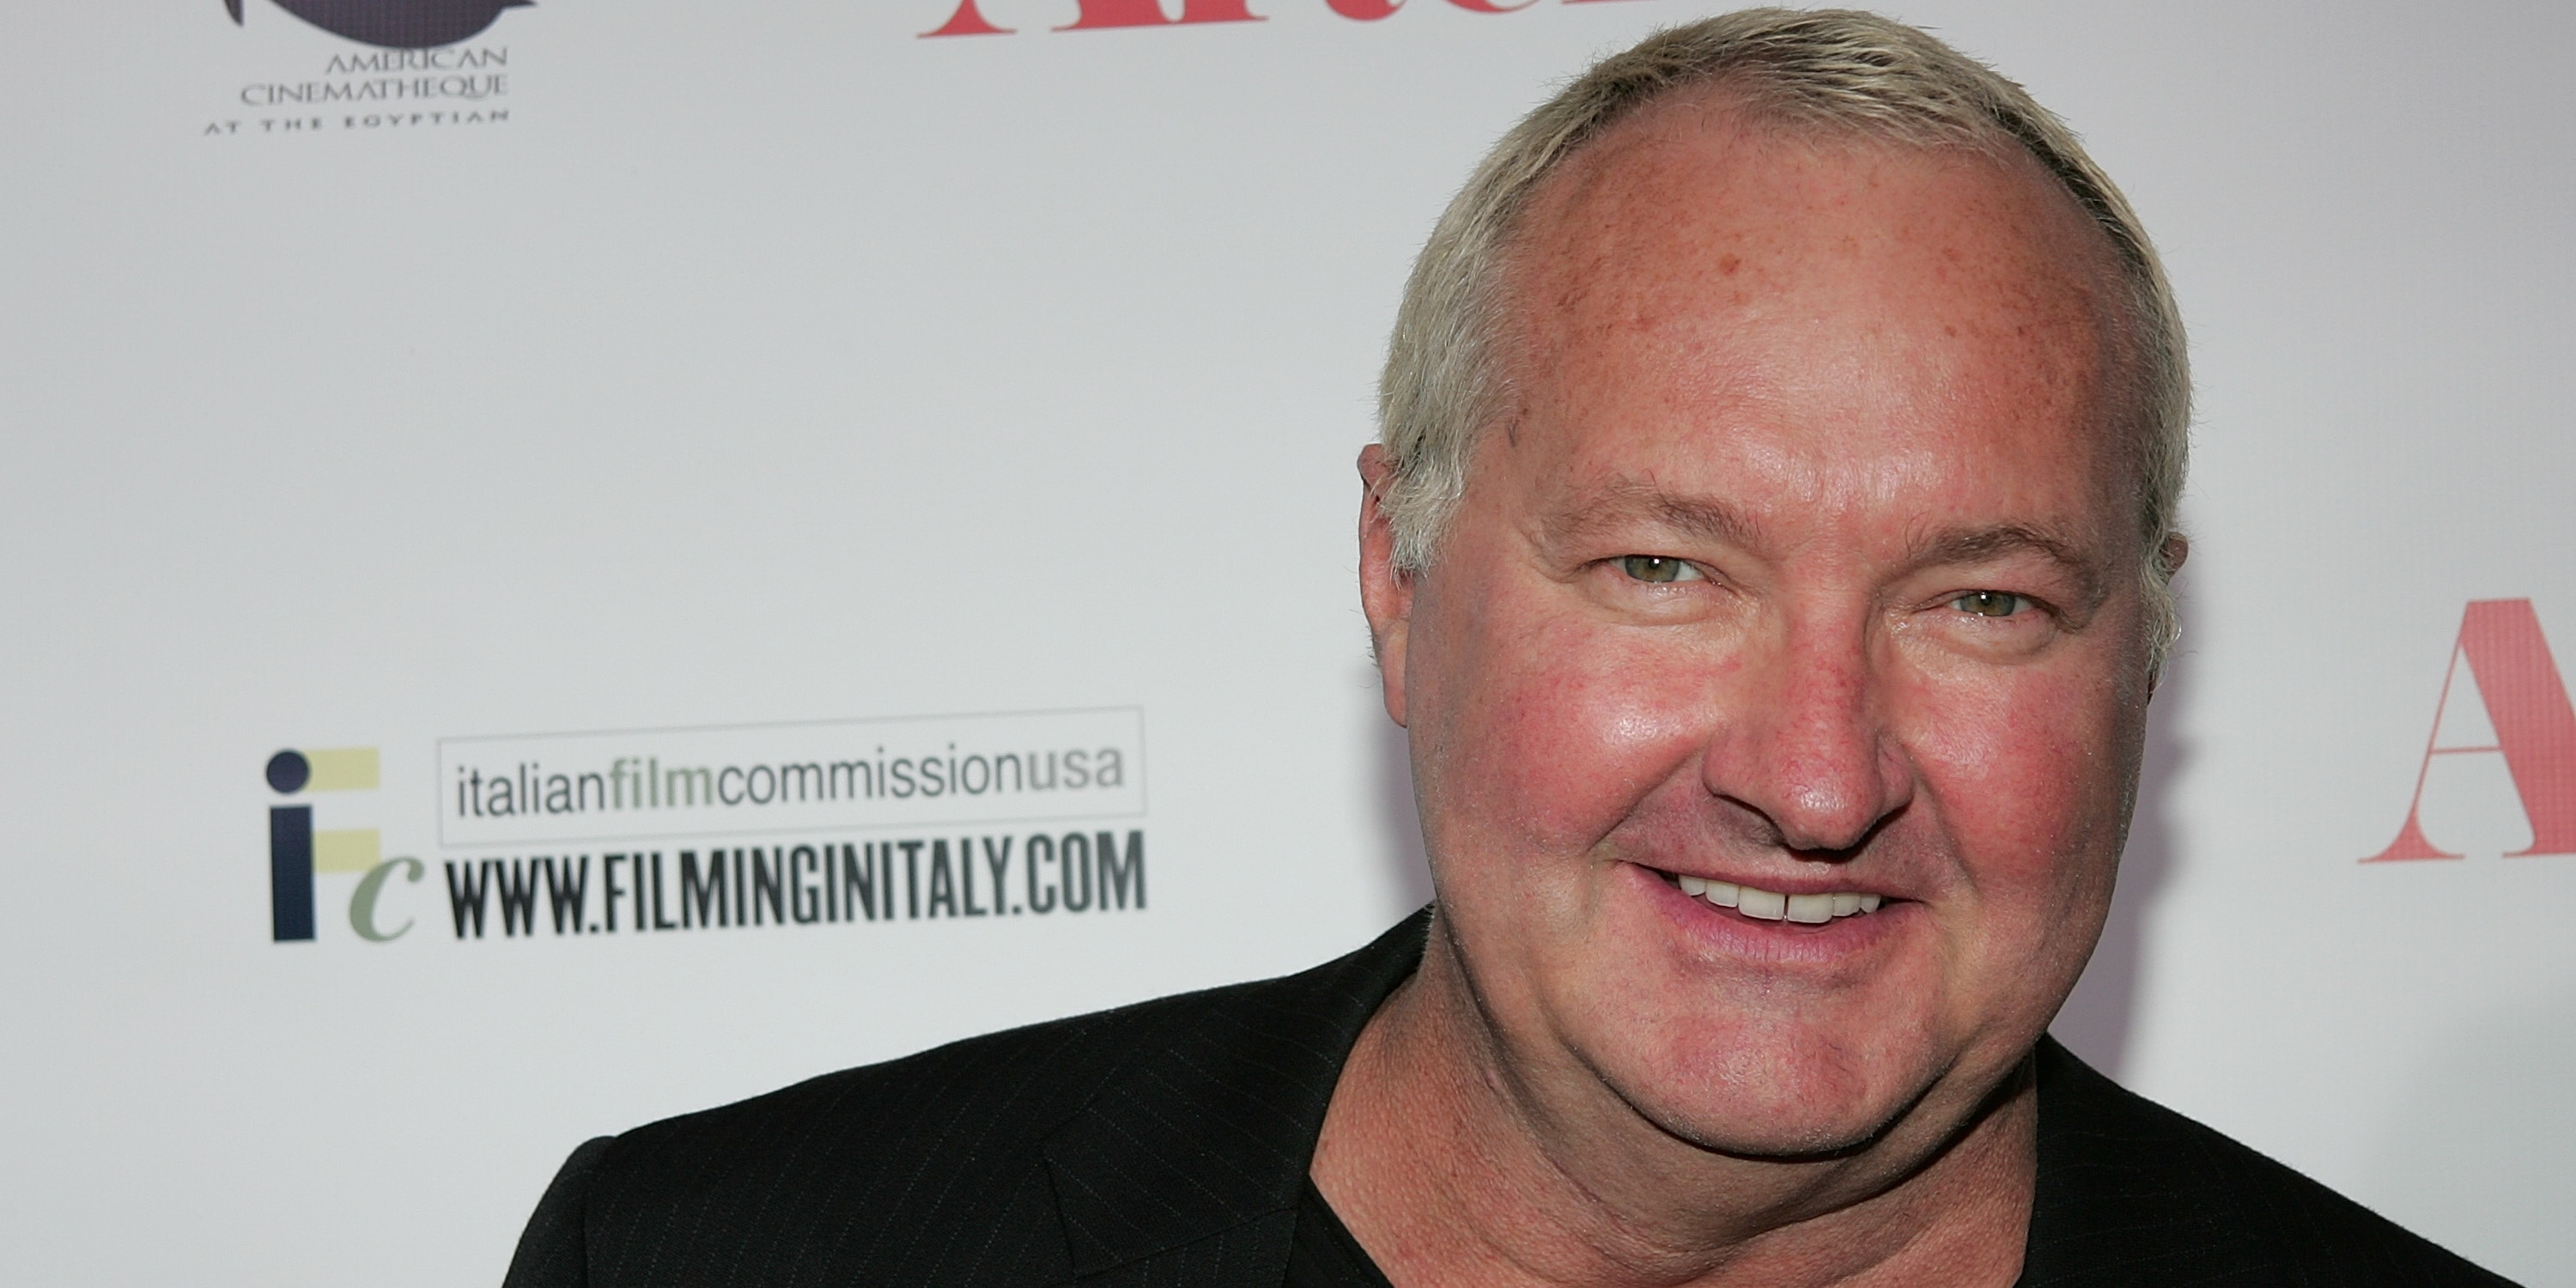 randy quaid net worth amp biowiki 2018 facts which you